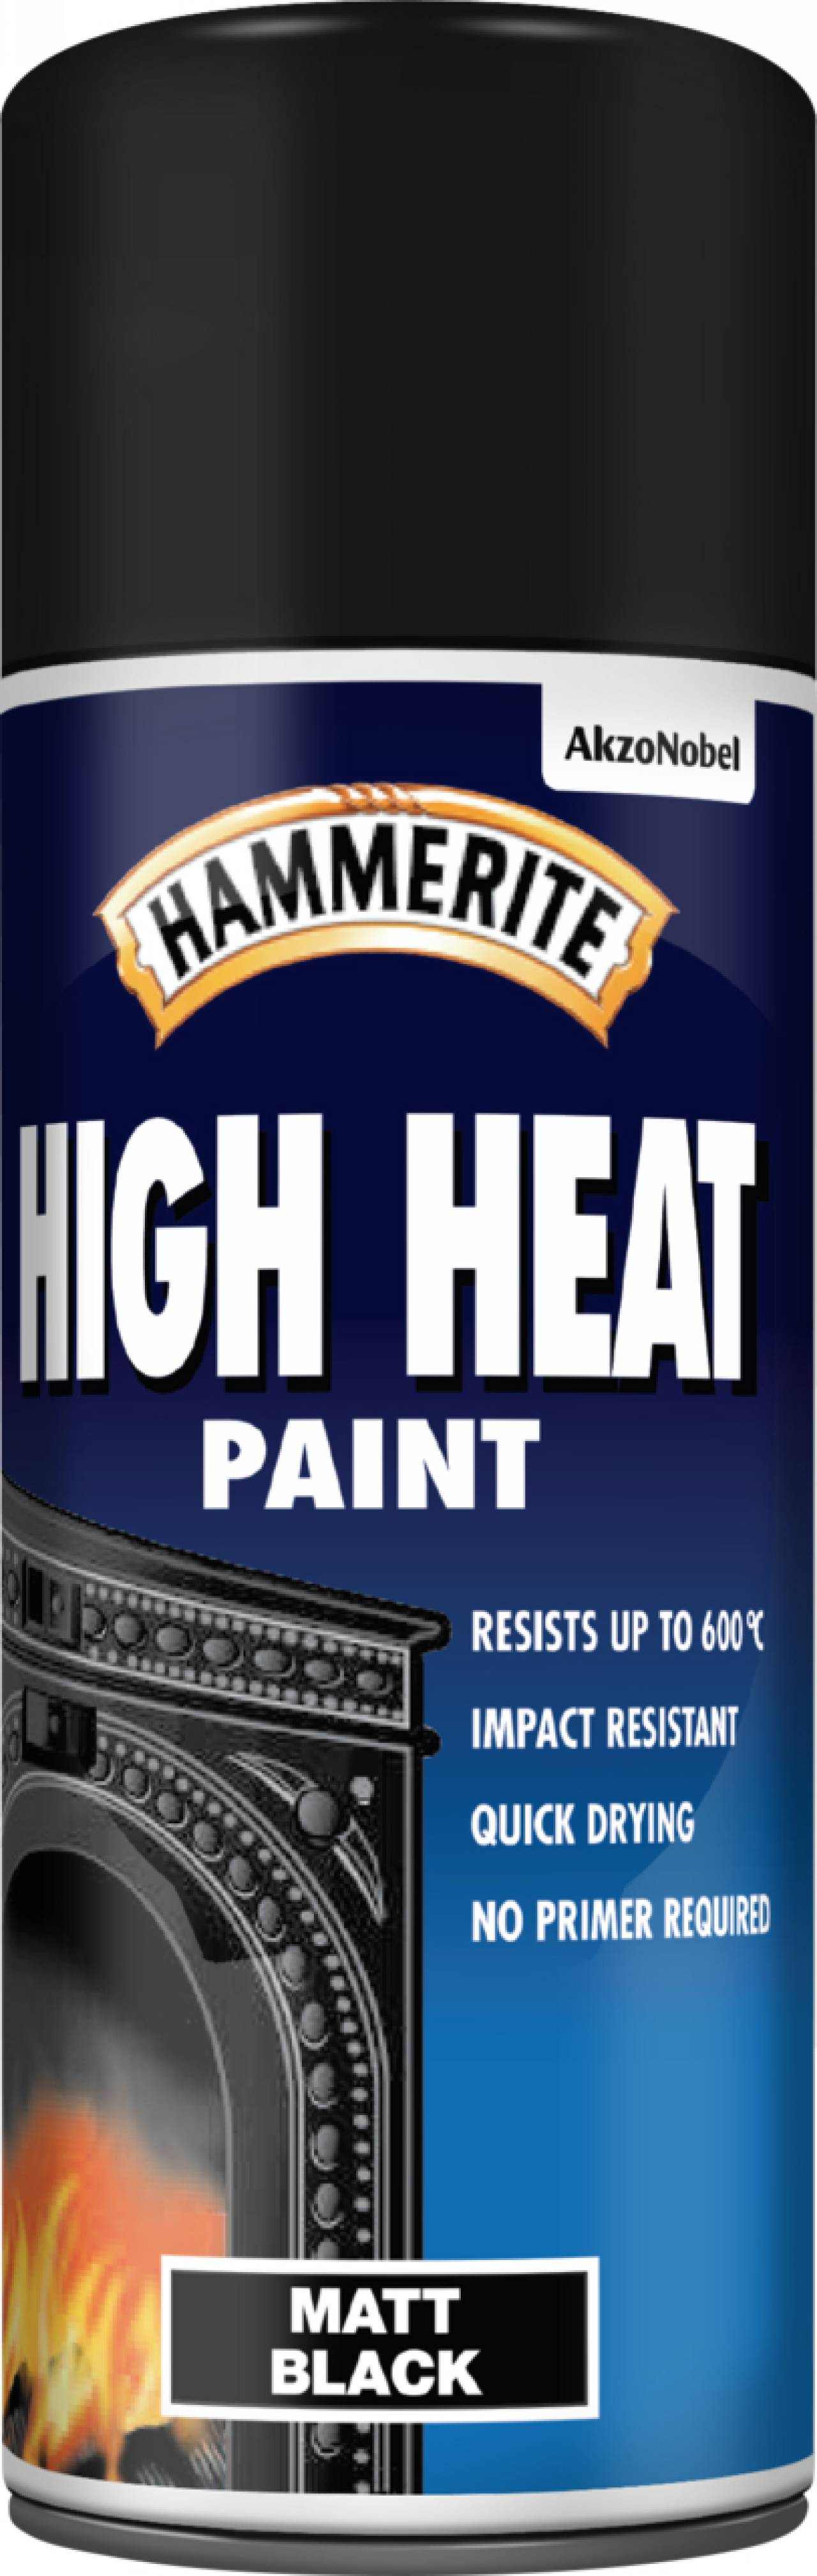 High Heat Paint Aerosol– Protect your metal - Hammerite